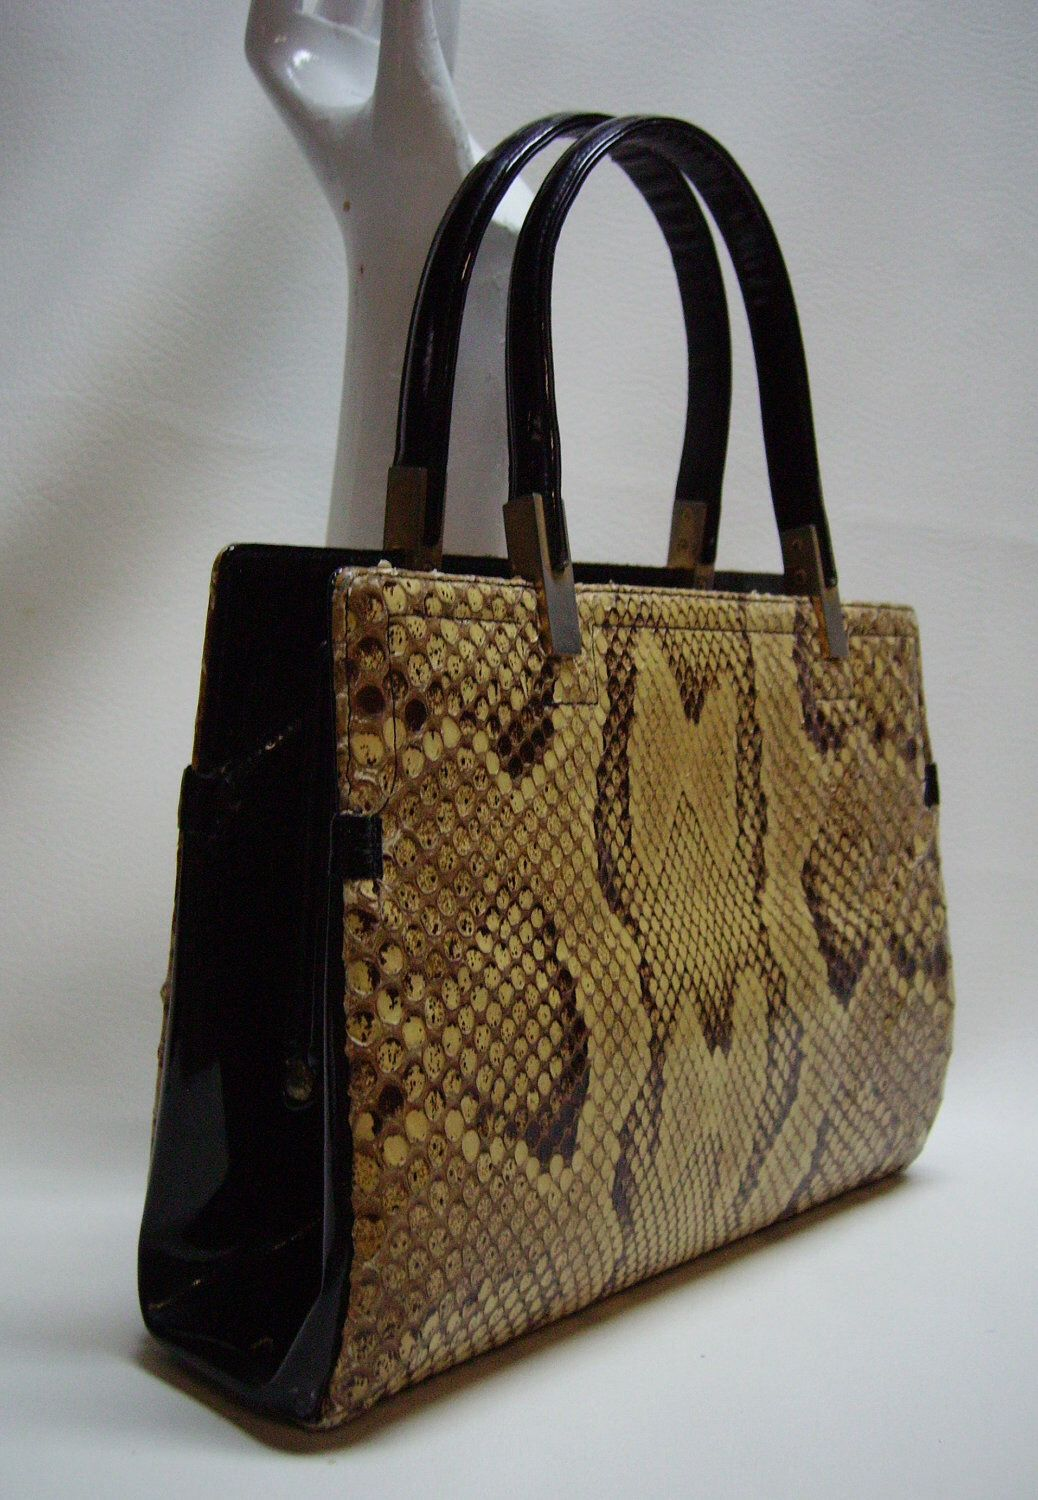 c3d54f1ff8cb KORET 60s Python Snakeskin Handbag Purse by Vintageables on Etsy  https   www.